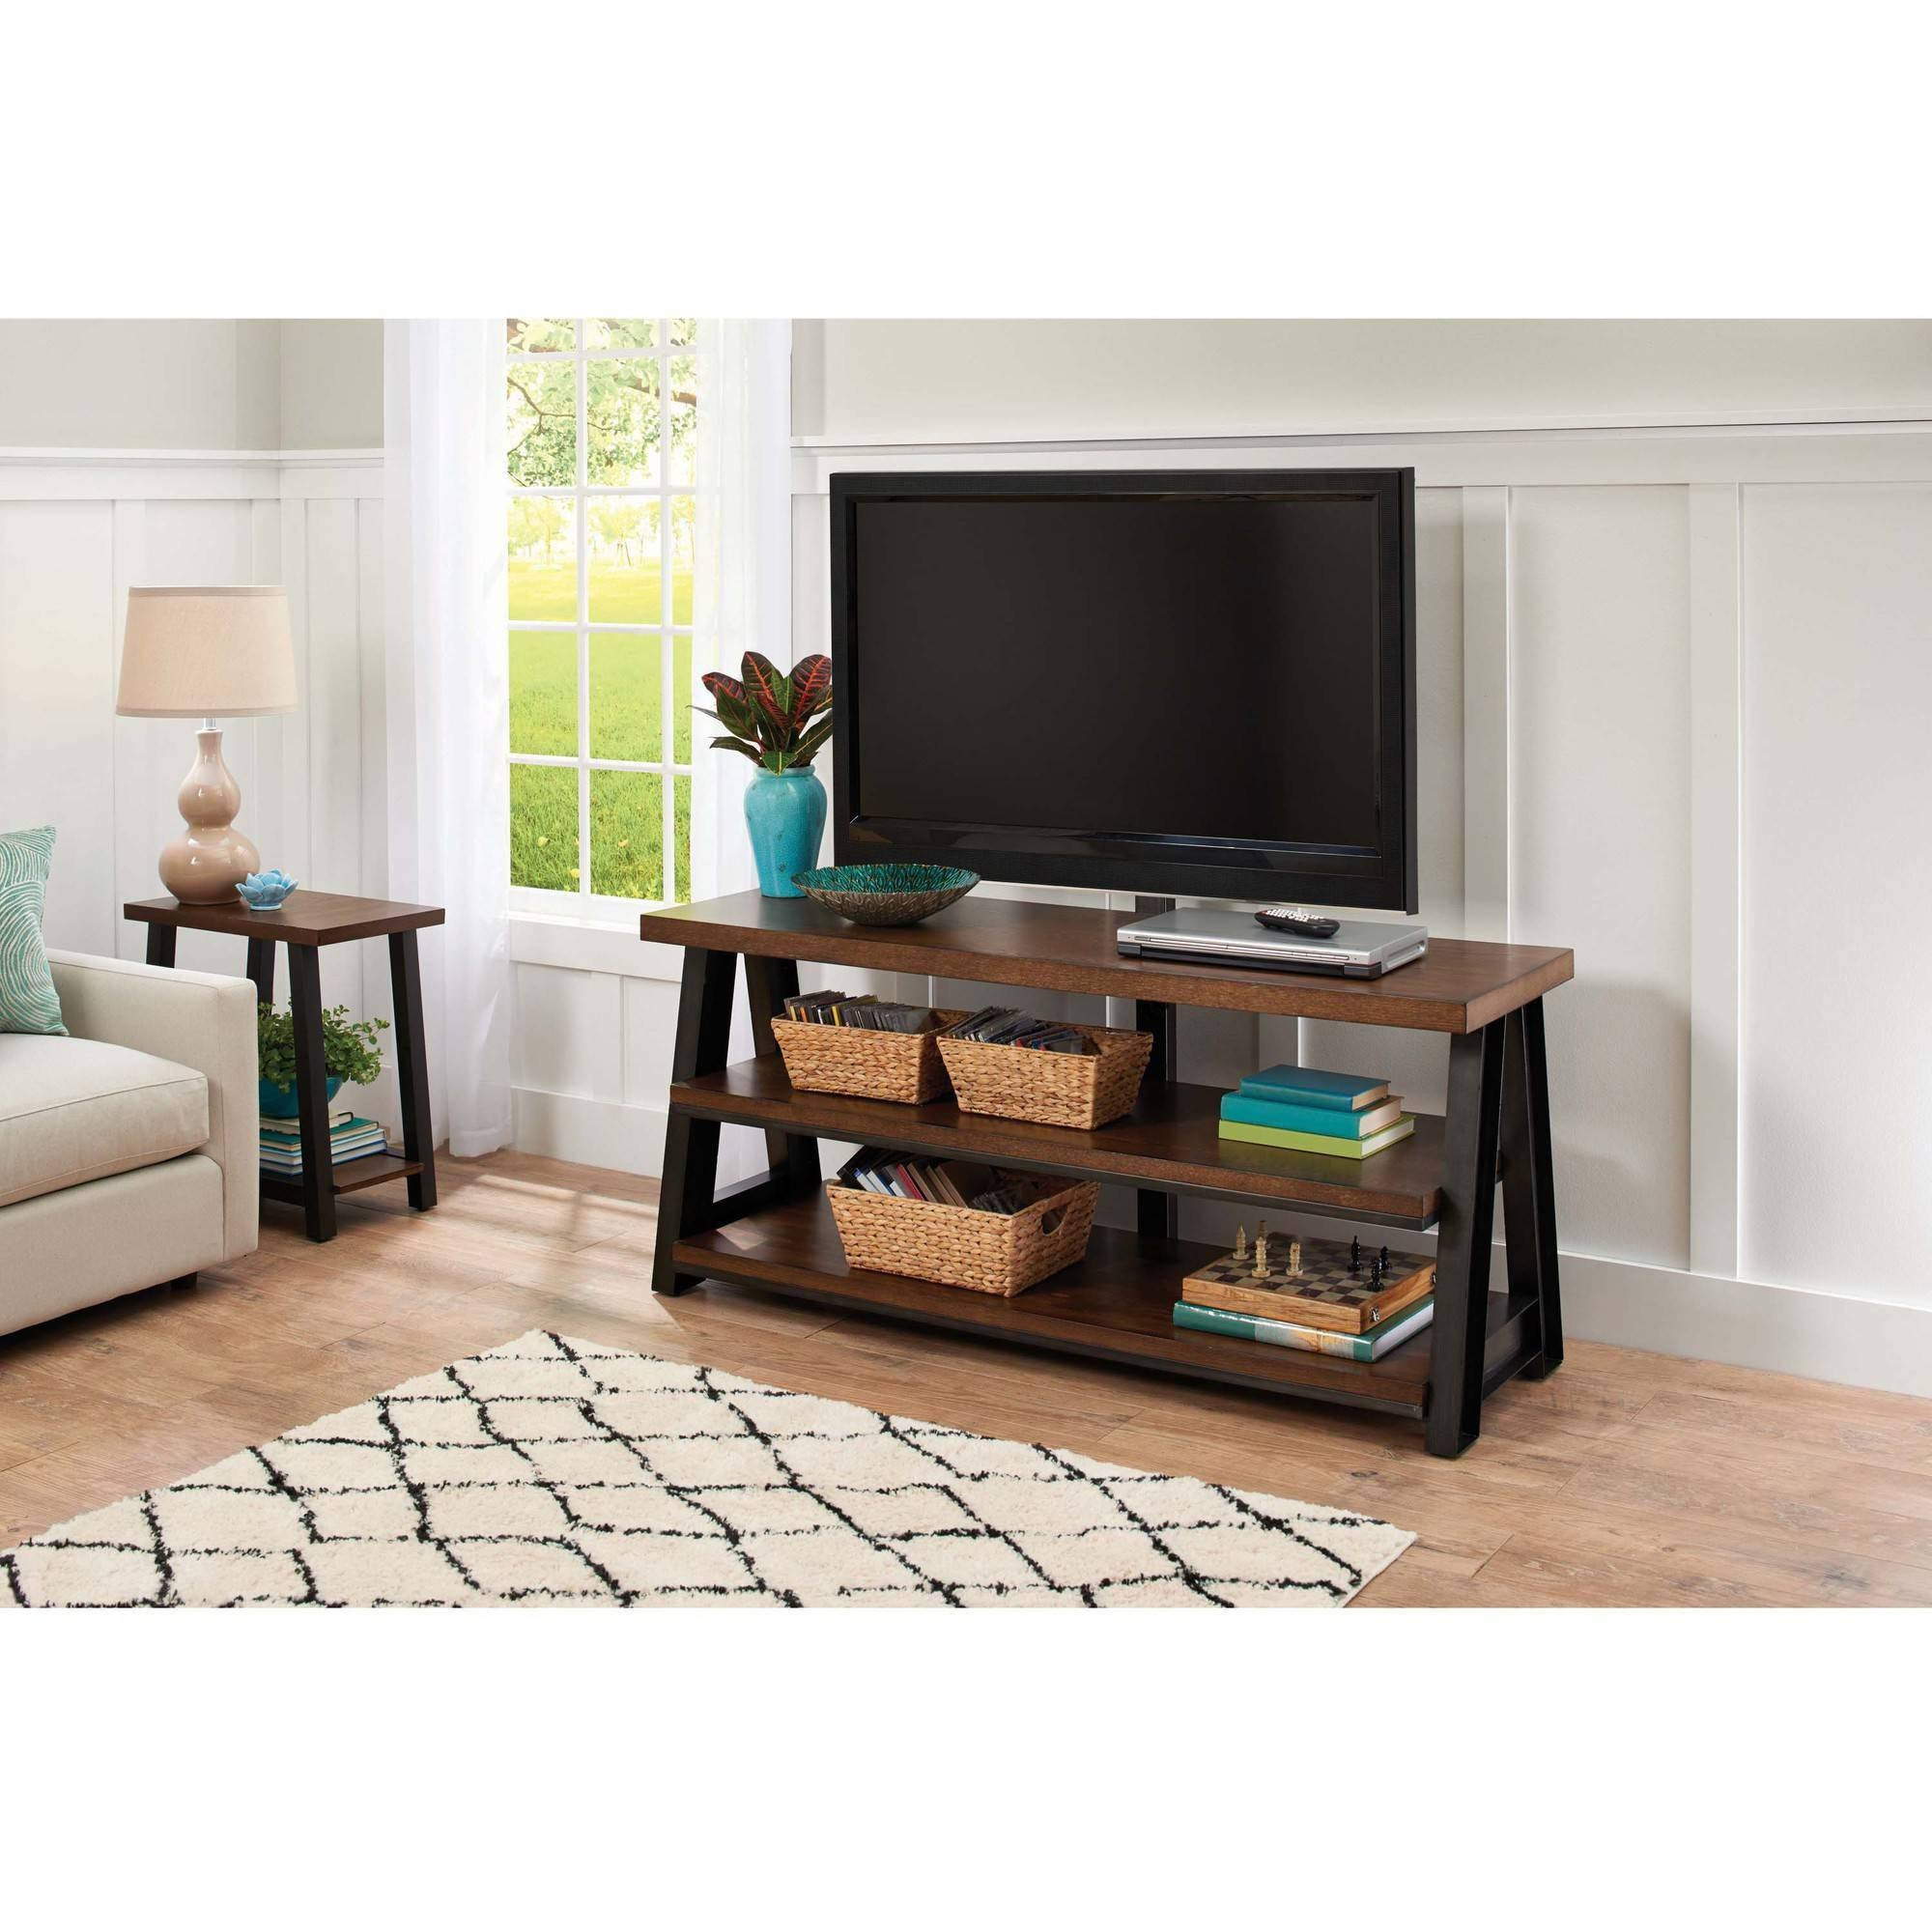 Better Homes And Gardens Mercer 3-In-1 Brown Tv Stand For Tvs Up intended for Tv Stands for 70 Inch Tvs (Image 6 of 15)